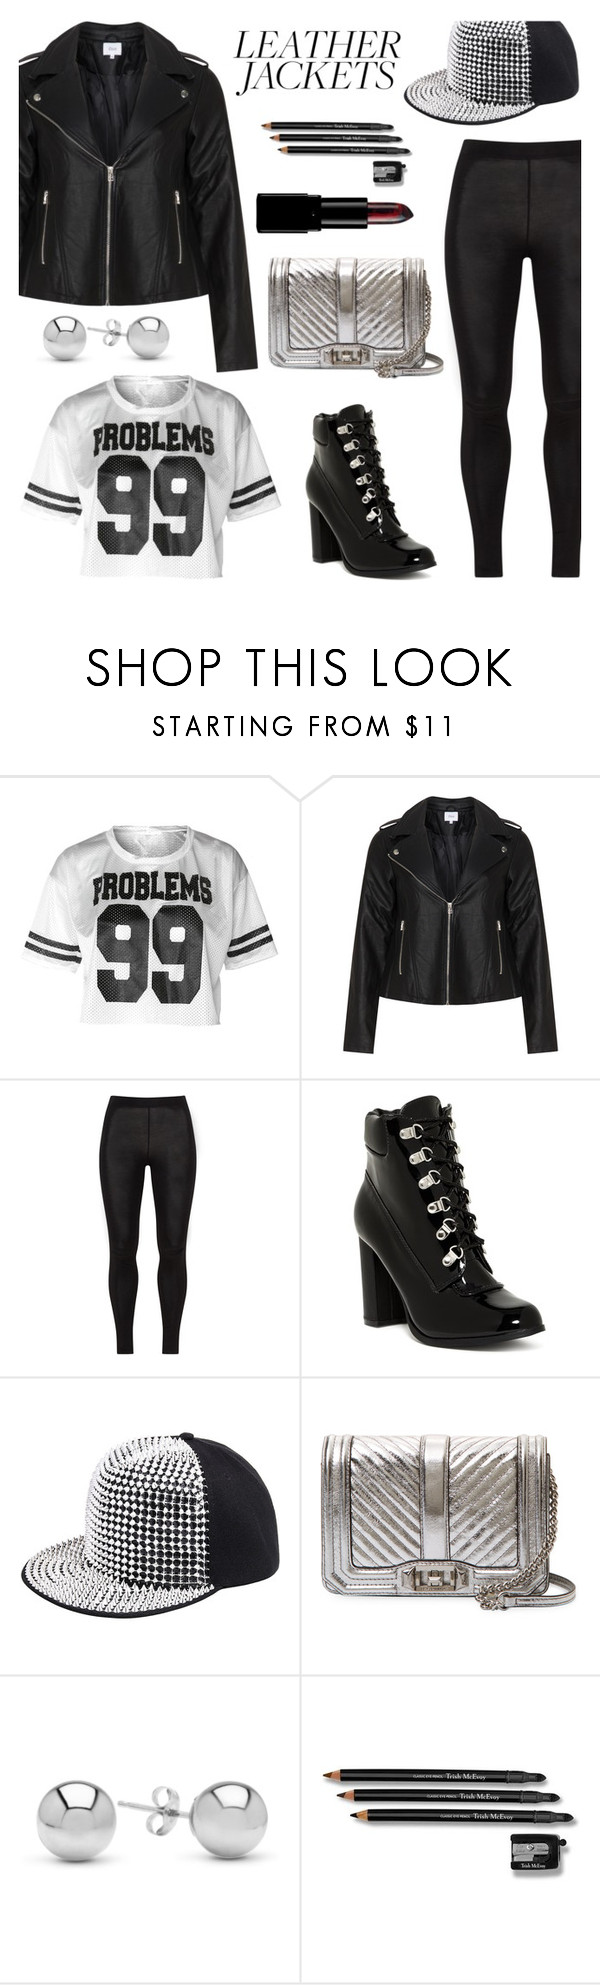 """Cool-Girl Style: Leather Jackets"" by the-geek-goddess ❤ liked on Polyvore featuring Zizzi, Cape Robbin, Rebecca Minkoff, Jewelonfire and Trish McEvoy"